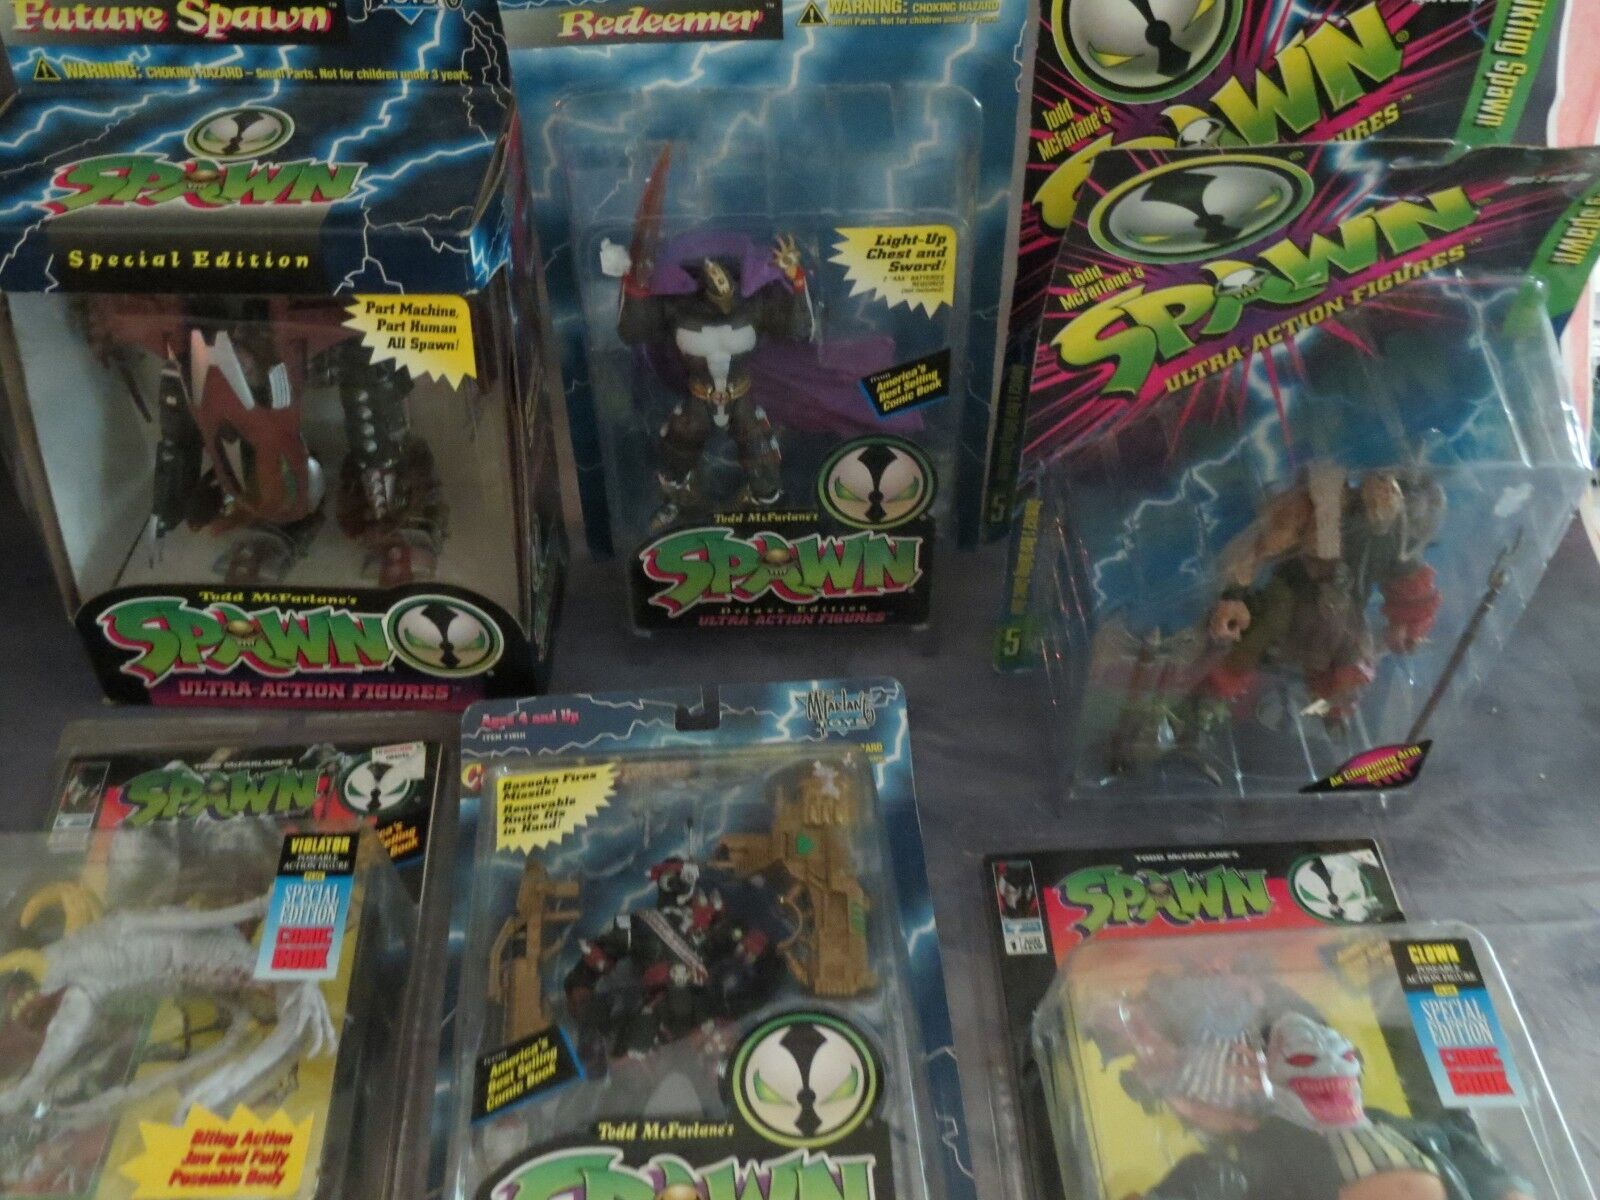 NEW Spawn Wirkung Figure Mixed Masse Of 7 Spielzeugs New Meerled Todd McFarlane's